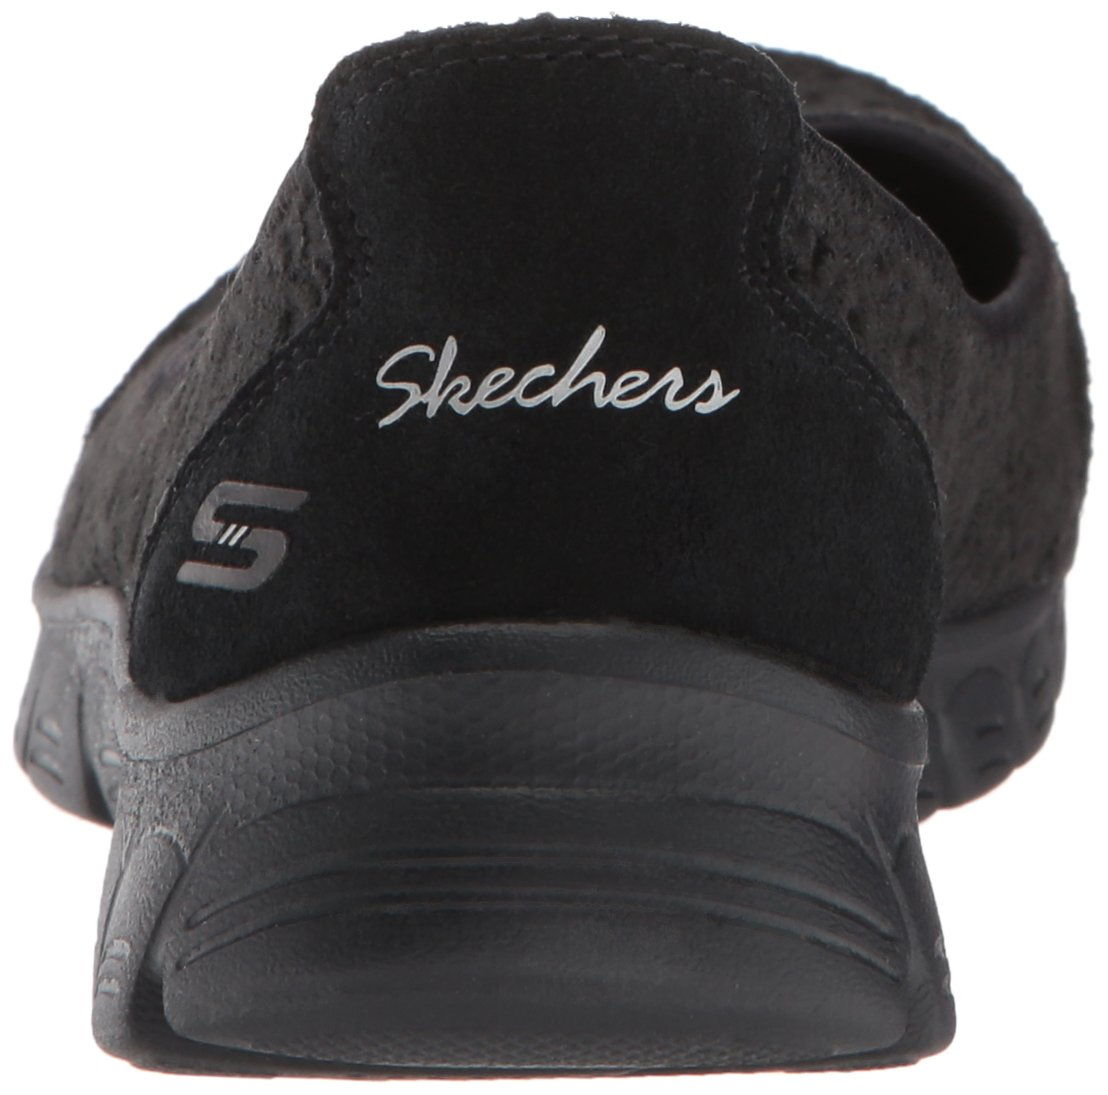 Skechers Women's Ez Flex 3.0-Be You Sneaker B078YRFRCF 9 B(M) US|Black